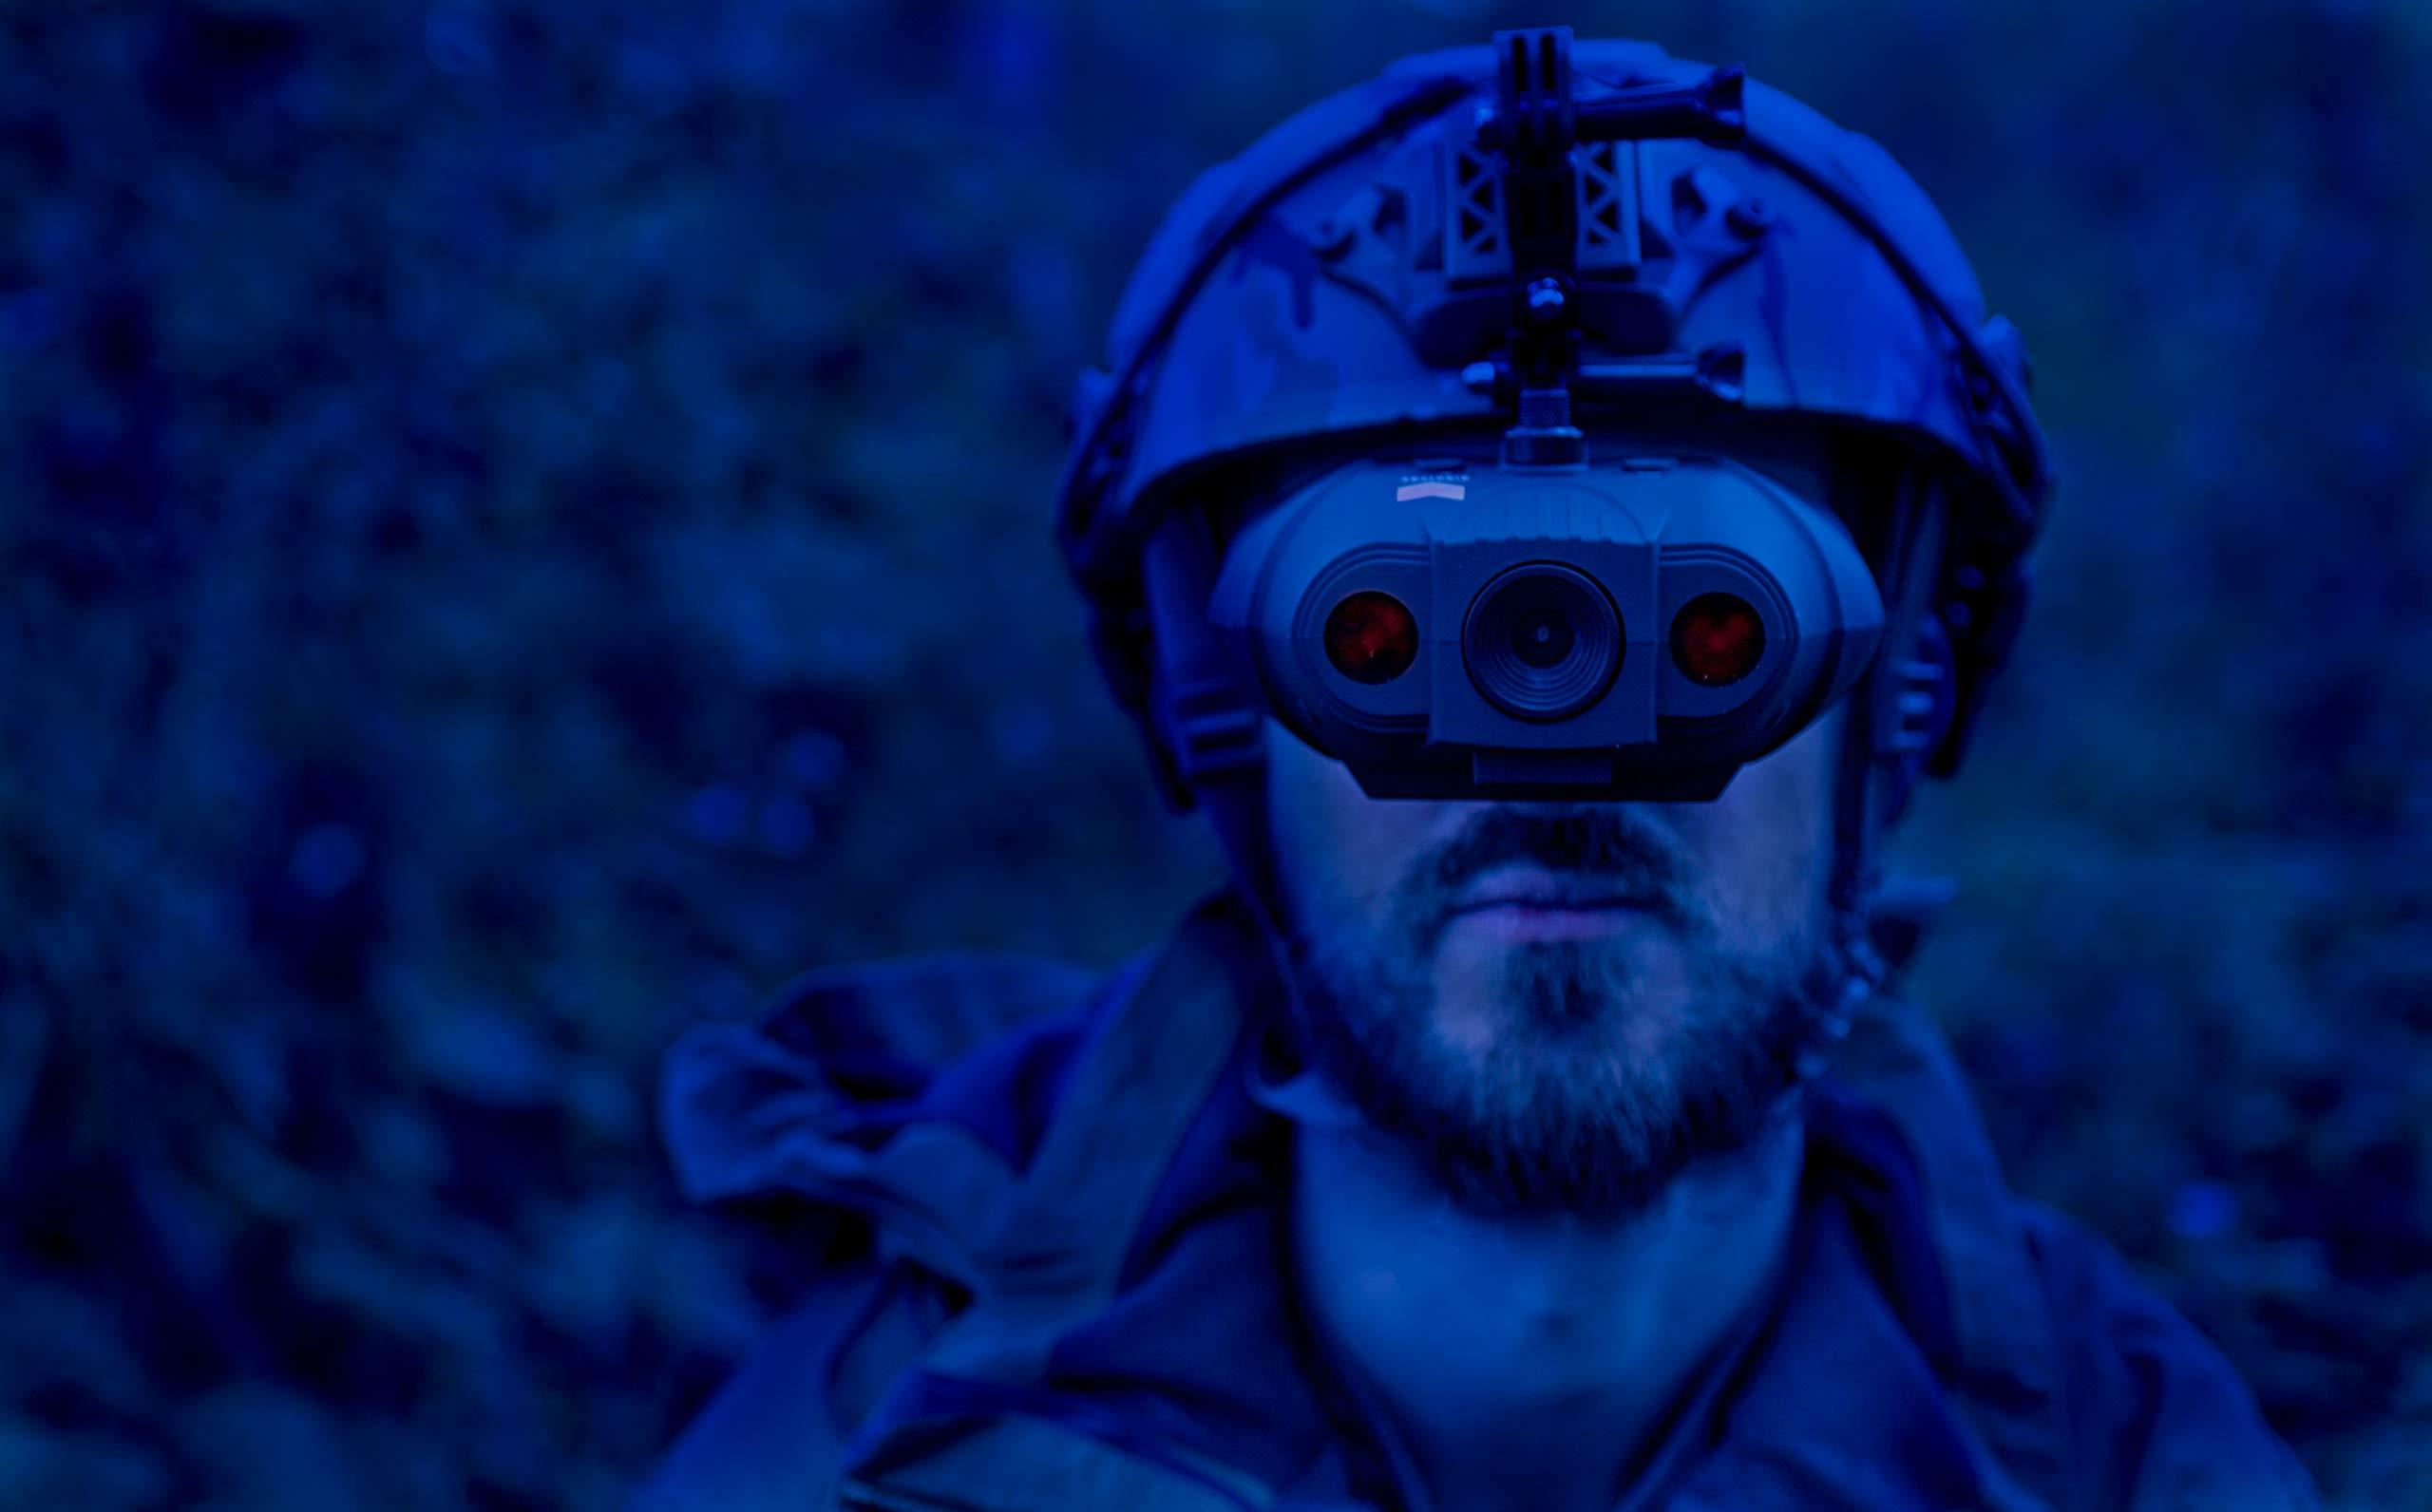 What to Look for in Night Vision Binoculars?